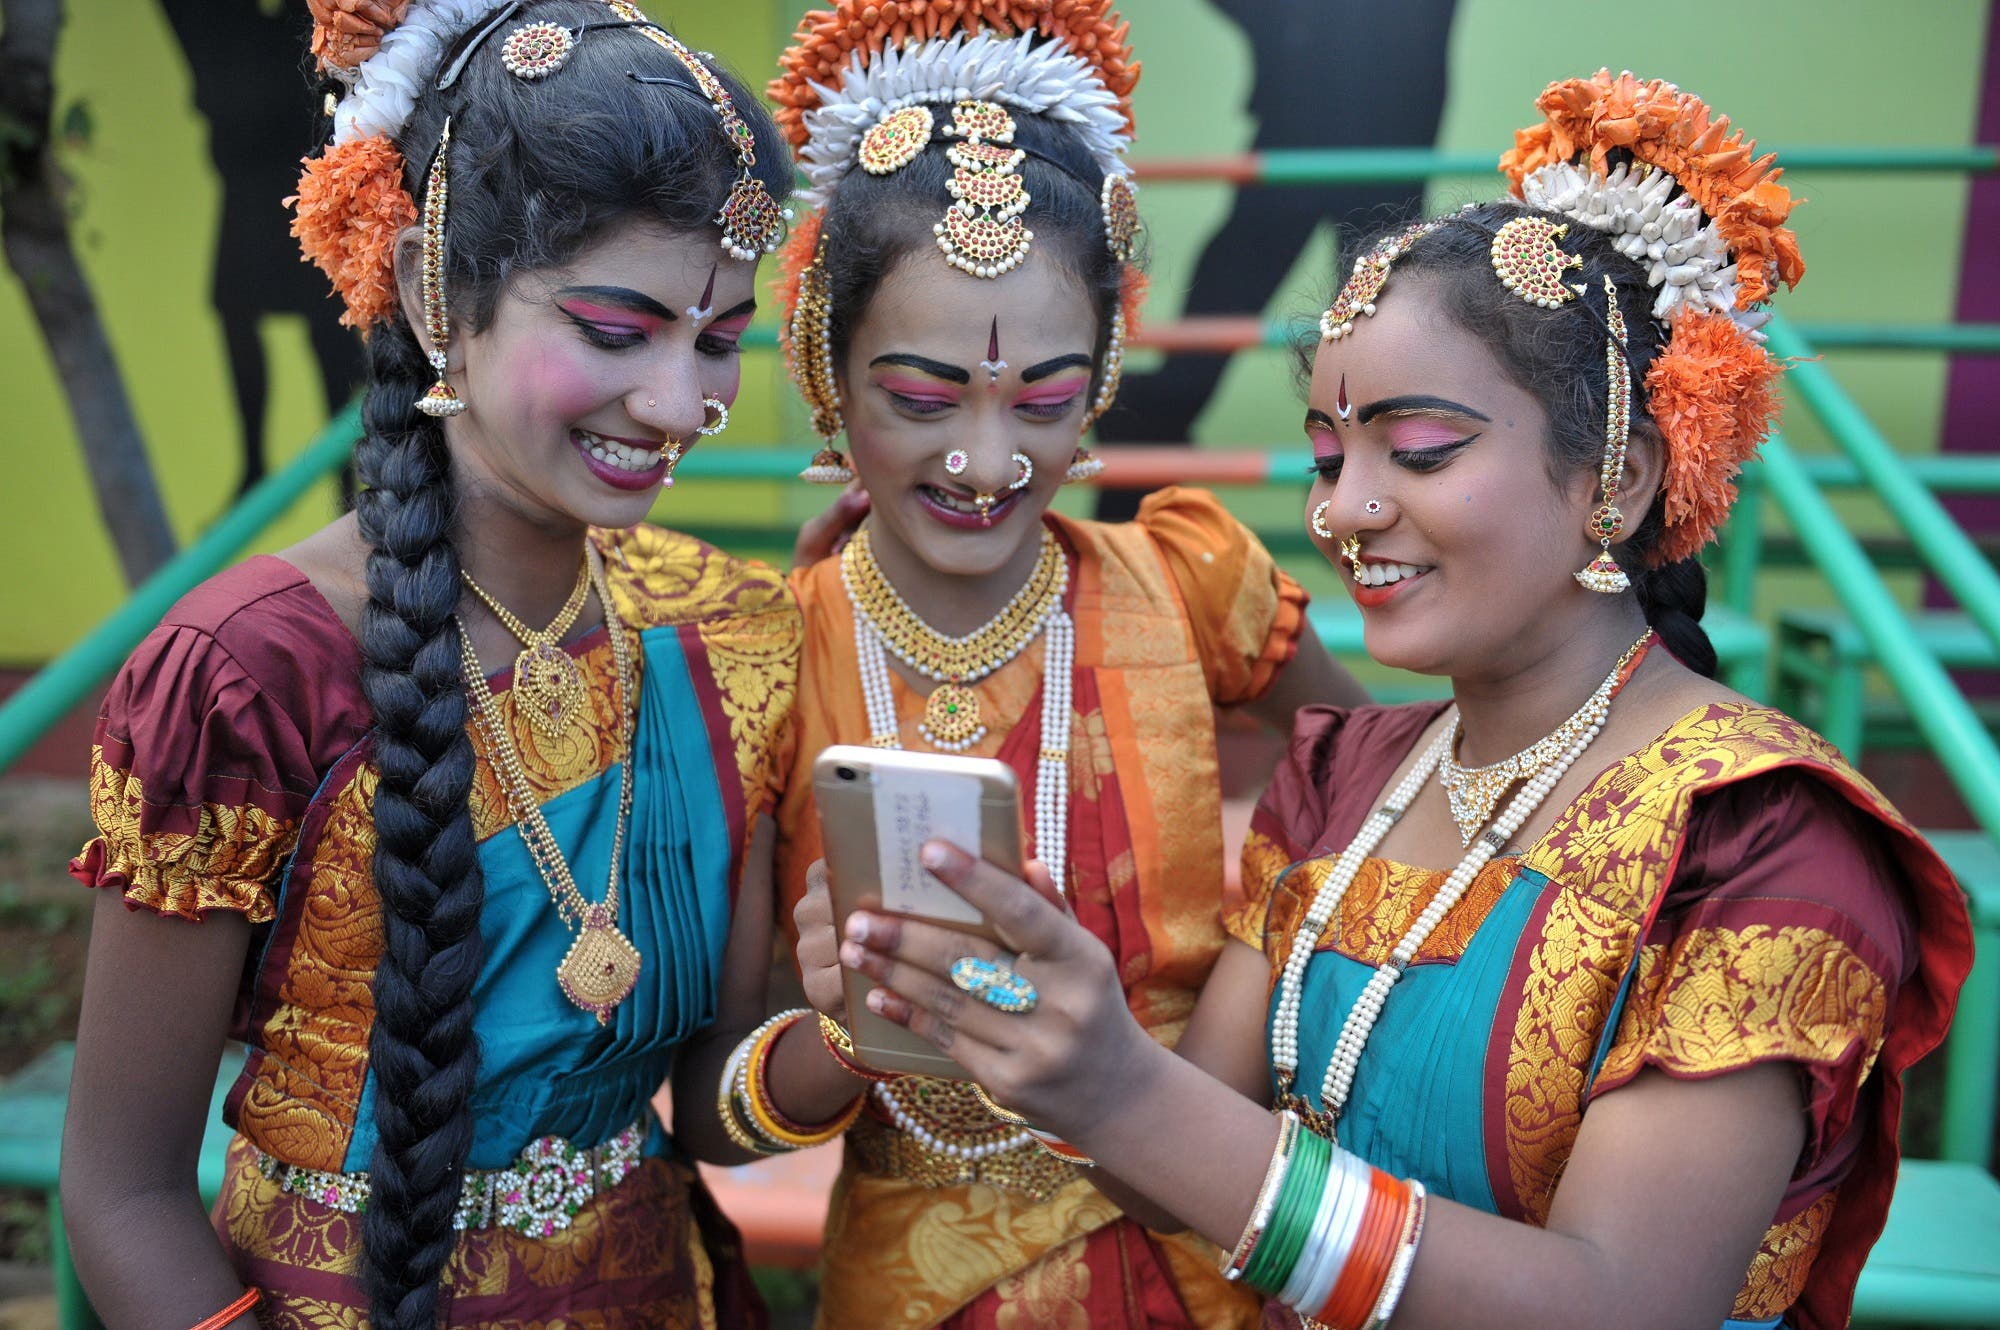 Indian girls look at a mobile phone prior to taking part during Independence Day celebrations in Secunderabad, the twin city of Hyderabad. (File photo: AFP)